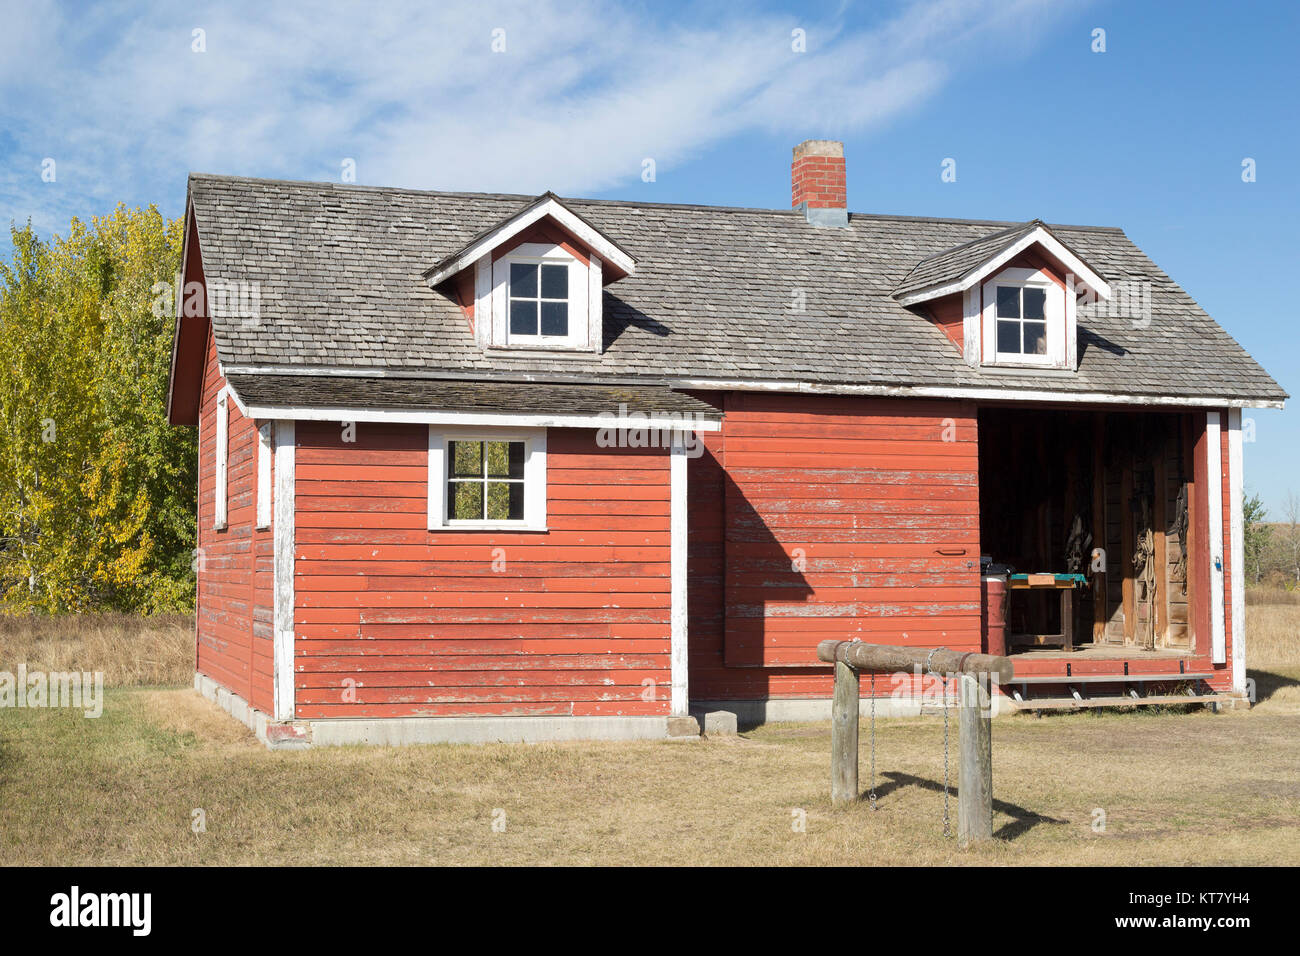 Harness Repair shop built c 1909, with hitching post in front, Bar U Ranch National Historic Site - Stock Image